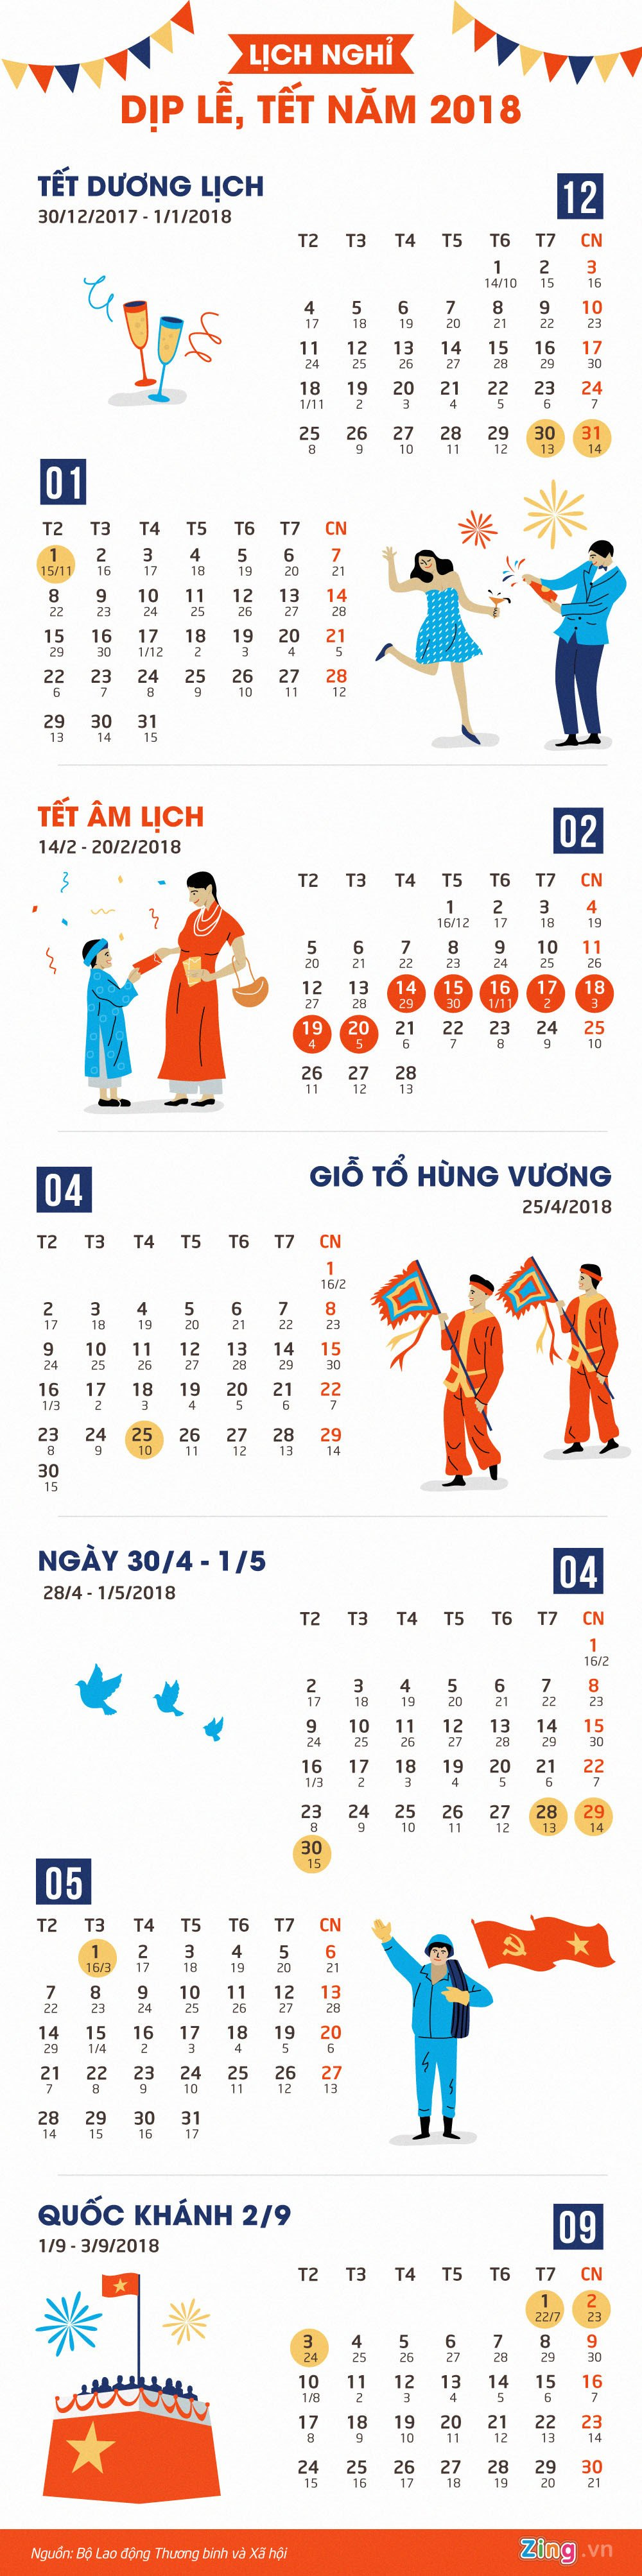 Chi tiet lich nghi dip le, Tet nam 2018 hinh anh 1